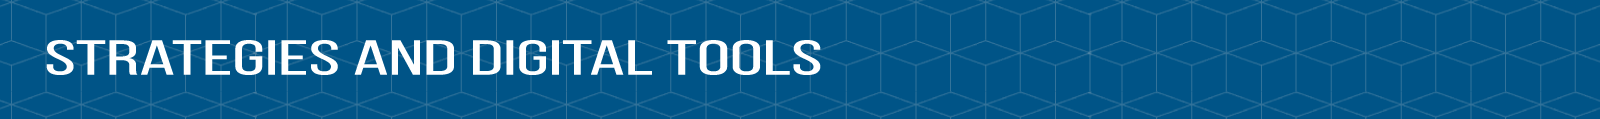 "Header image that reads ""Strategies and Digital Tools"""